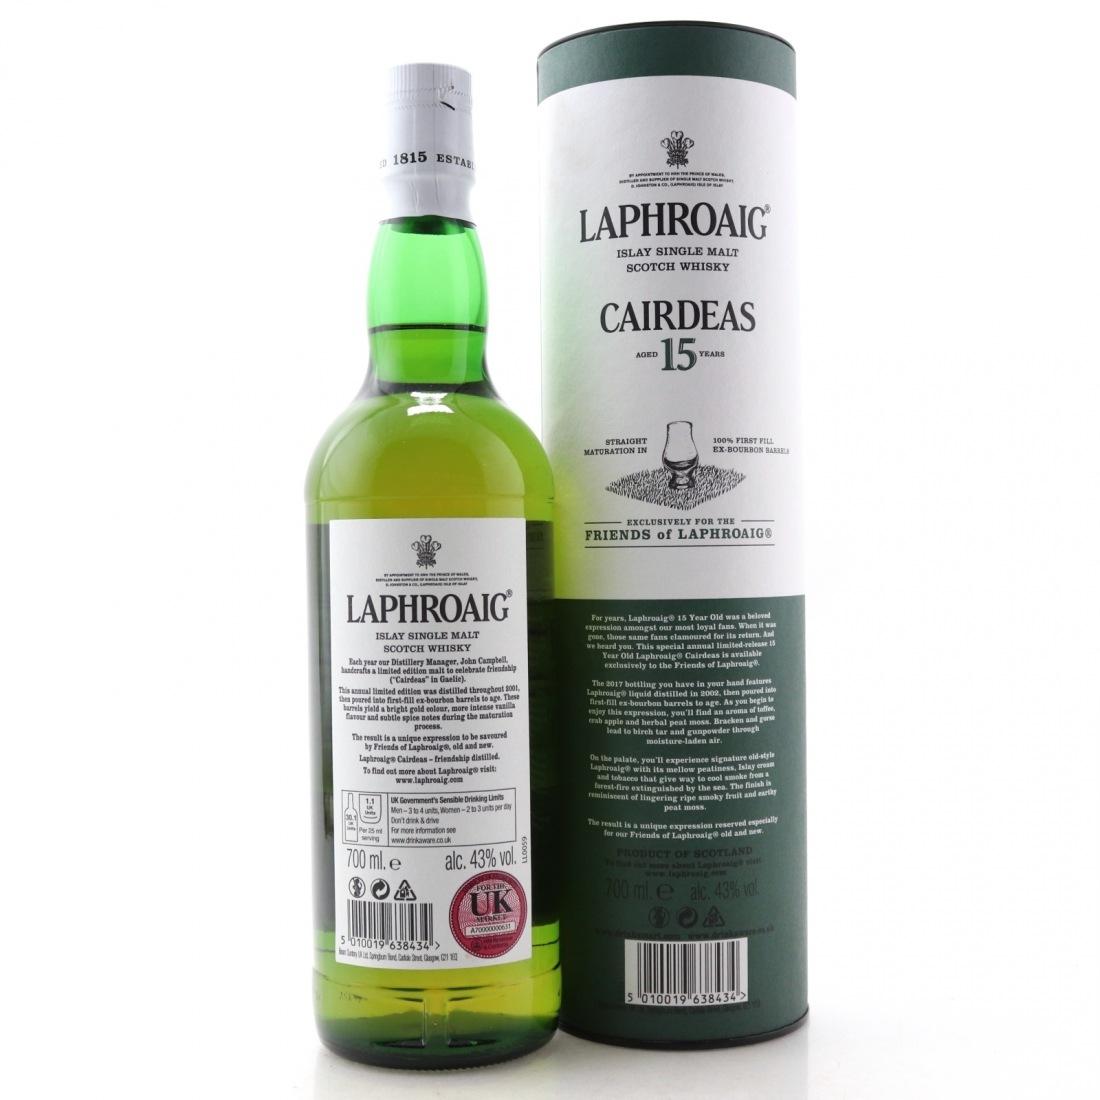 Laphroaig 2001 Cairdeas 15 Year Old / Friends of Laphroaig 2017